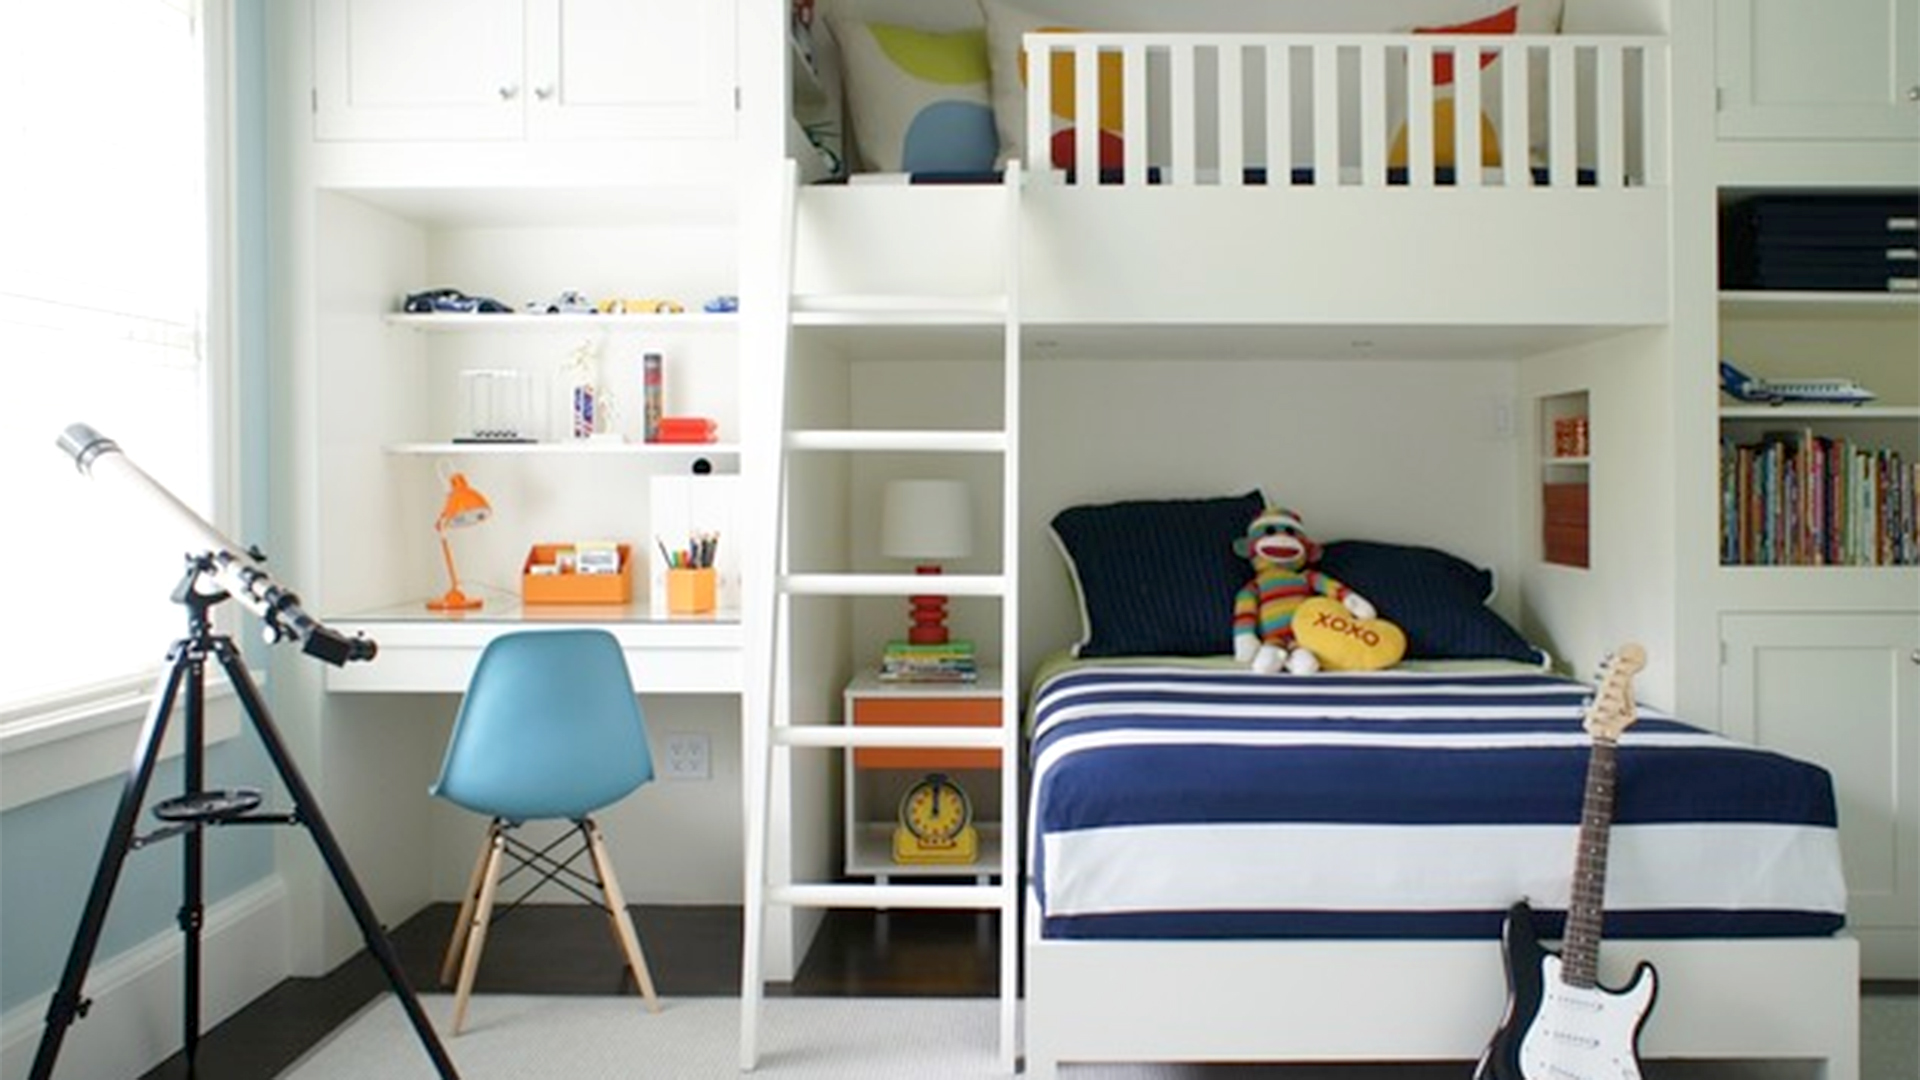 Pics Of Kids Rooms 6 Creative Built In Ideas For Kids 39 Rooms Today